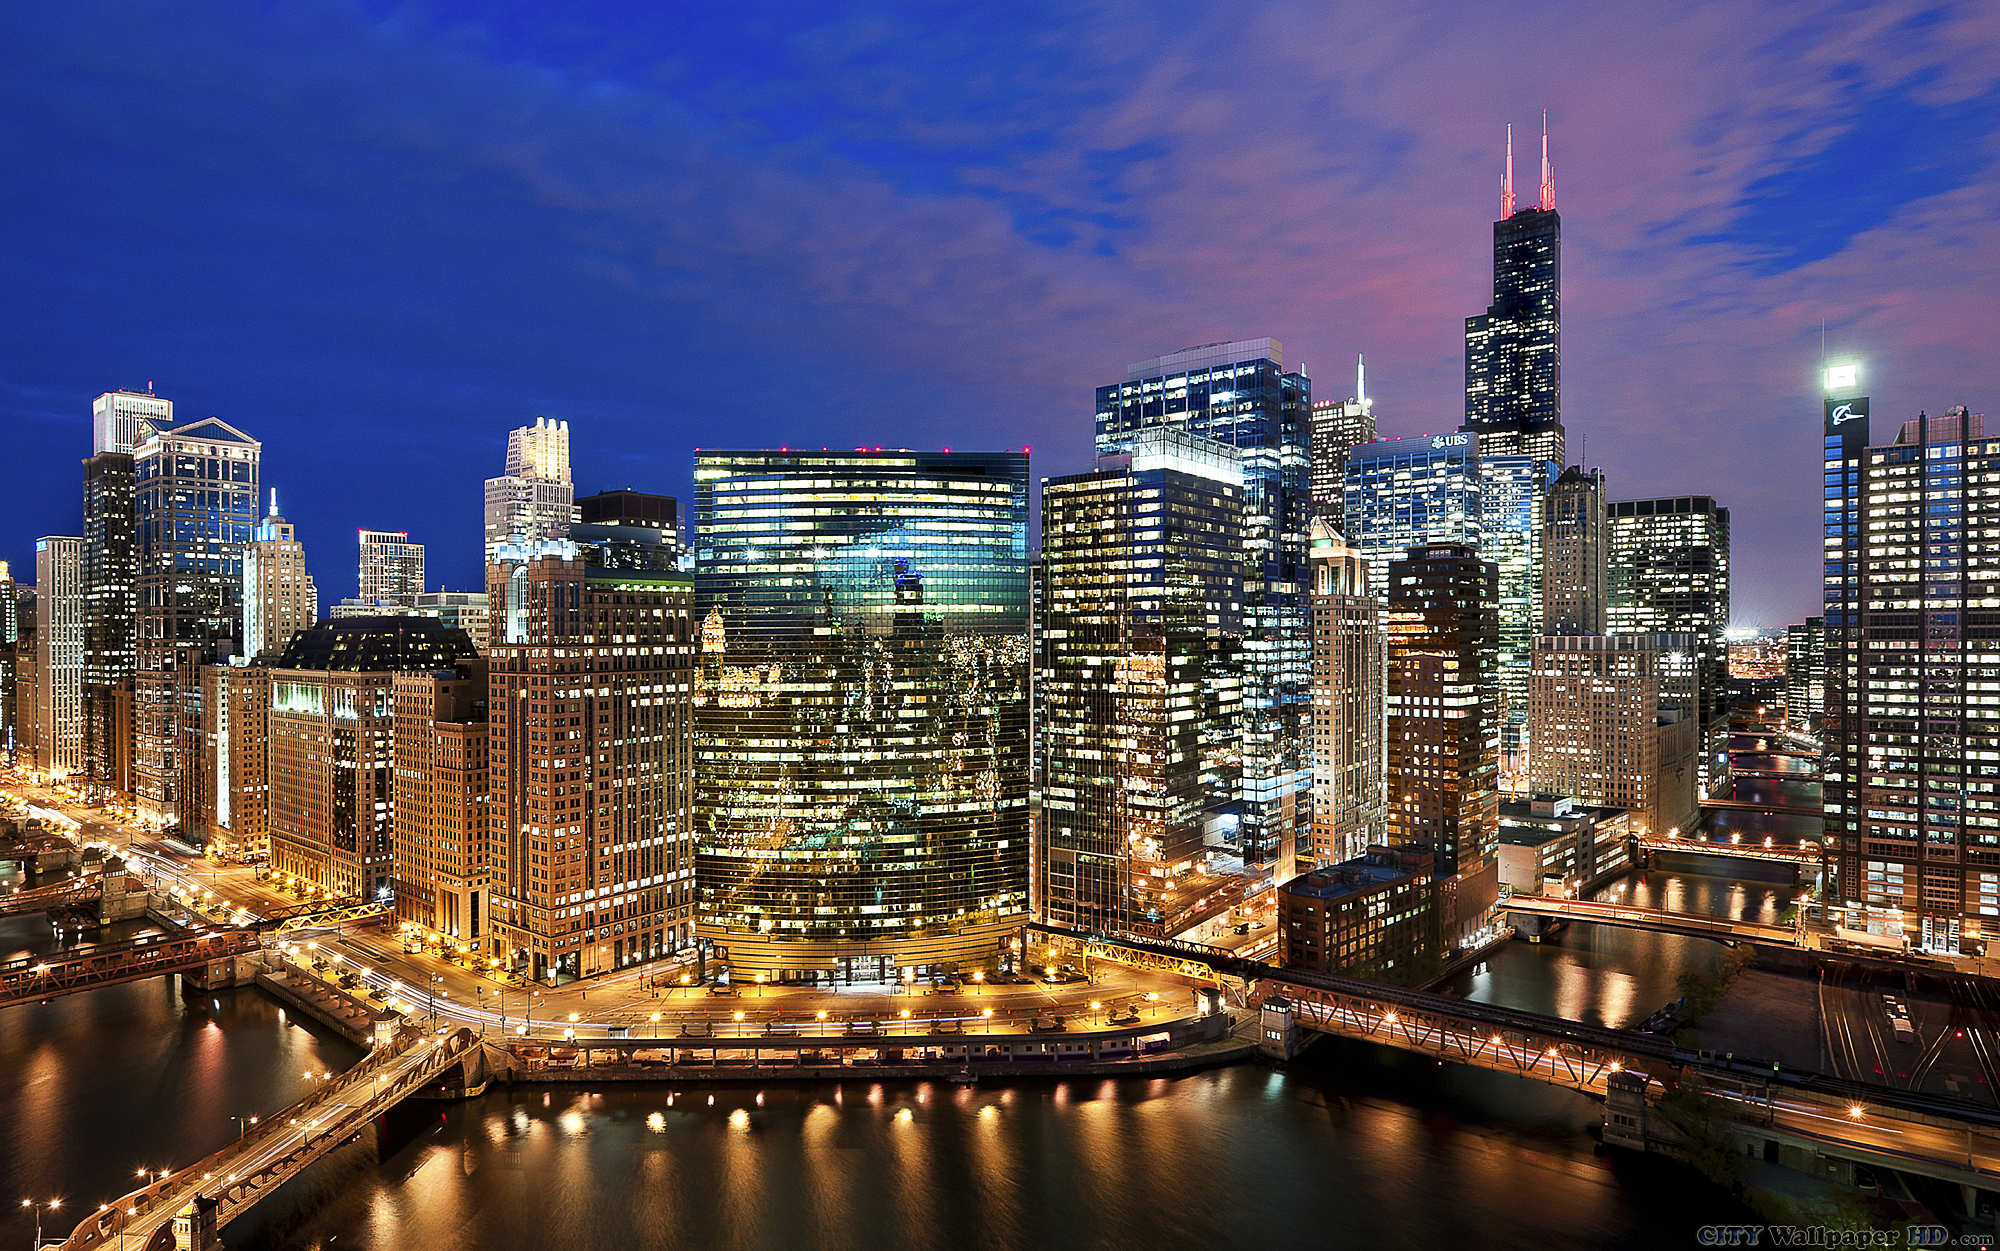 Almighty Chicago Download cityscapes for your computer 2000x1251